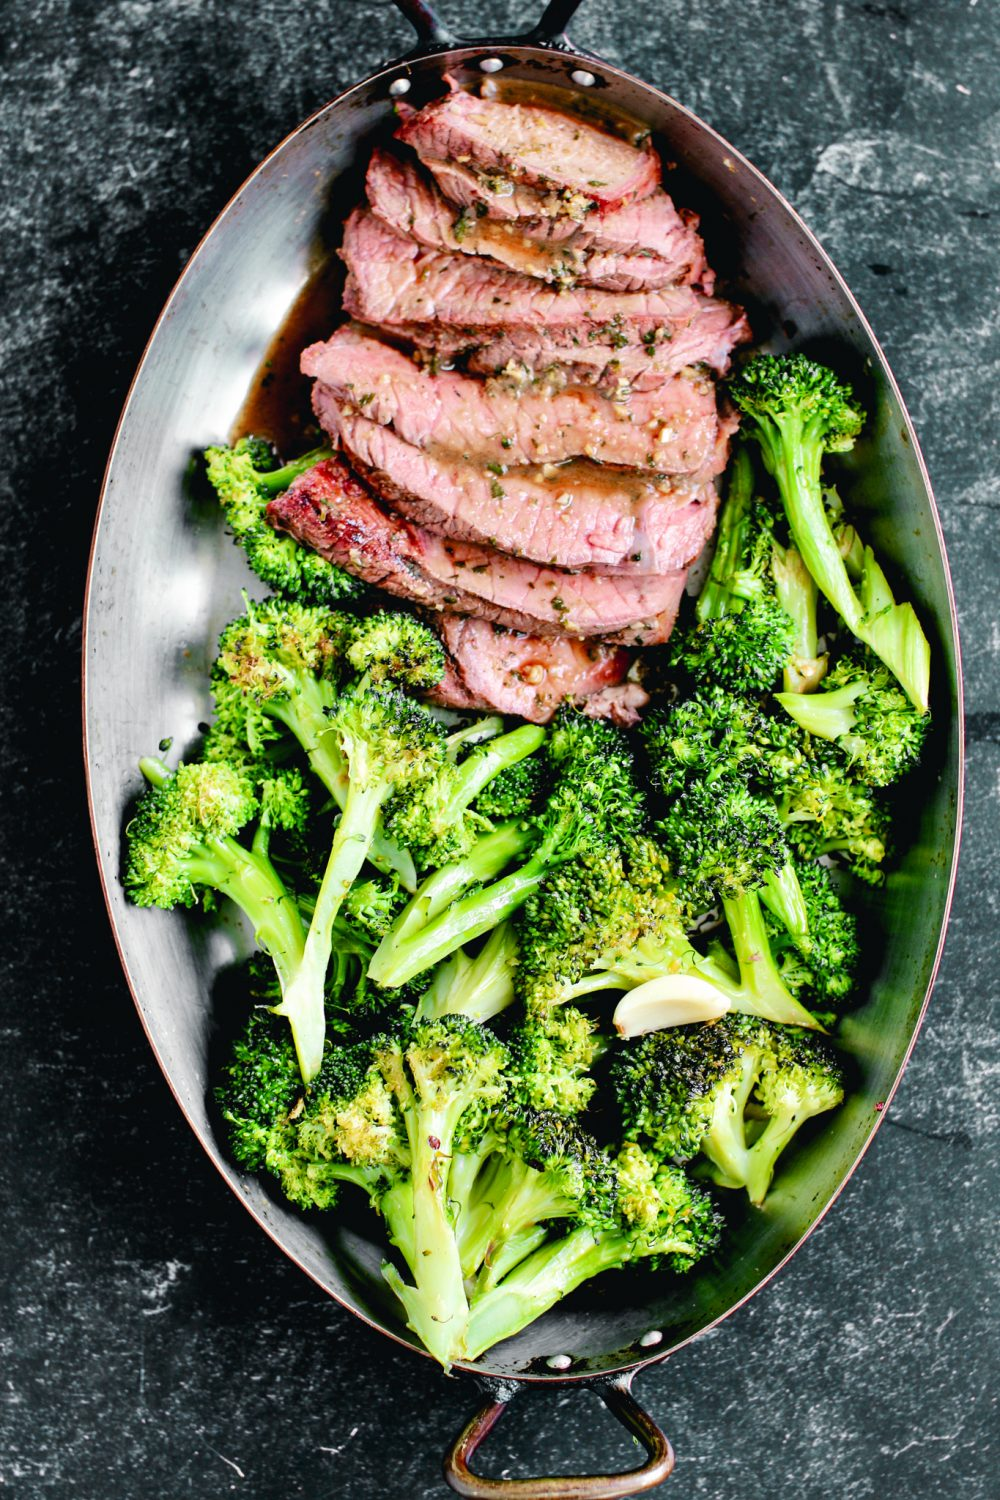 Shasta Cut Steak  with Chili-Roasted Broccoli and Lemons